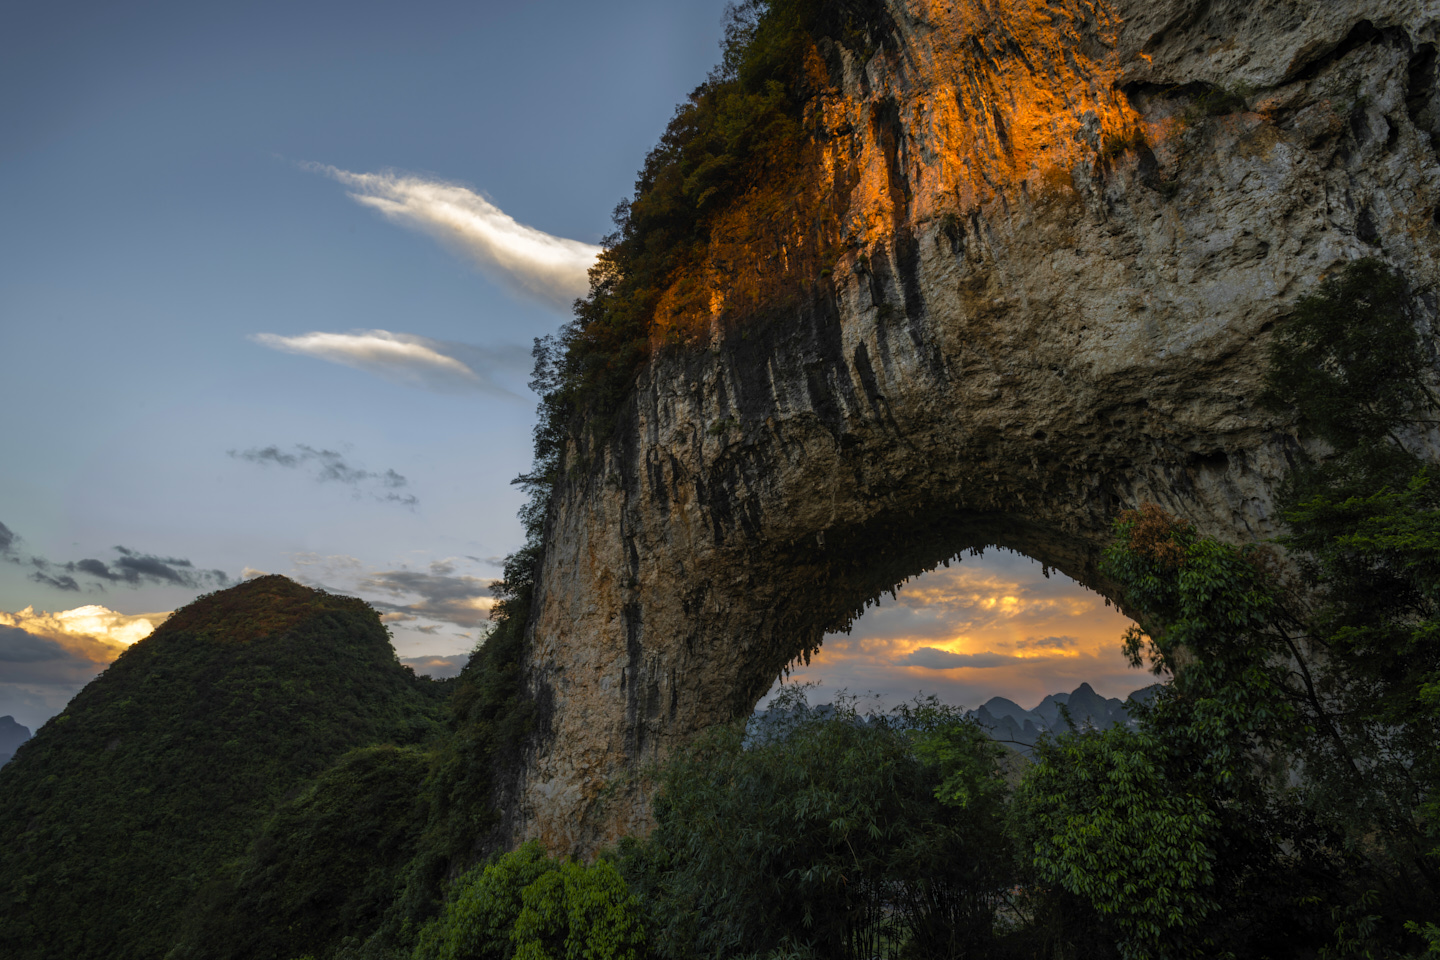 The great arch of Moon Hill is lit a fiery red as the last of the sun's rays strike its flank